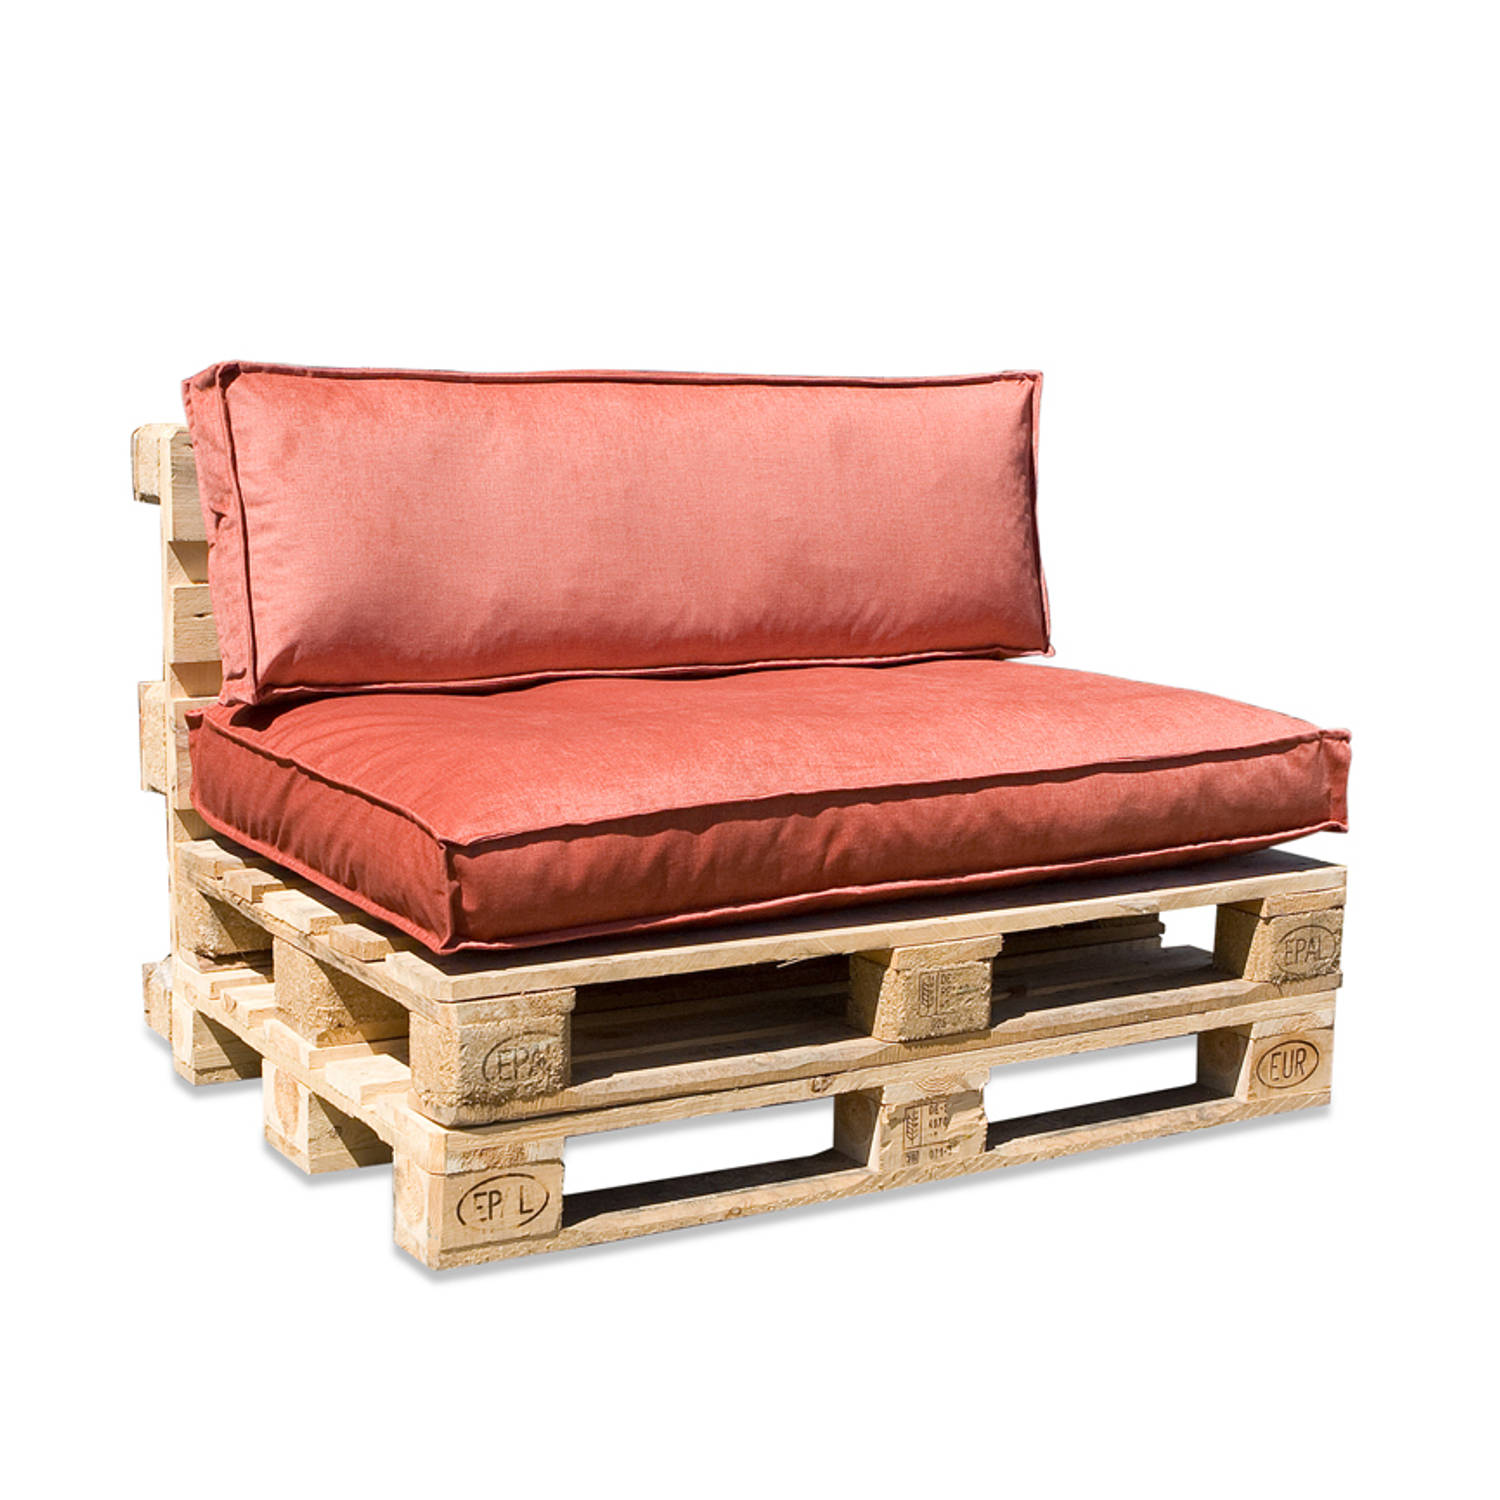 In The Mood Collection In The Mood Palletkussenset Royal Velvet Peach